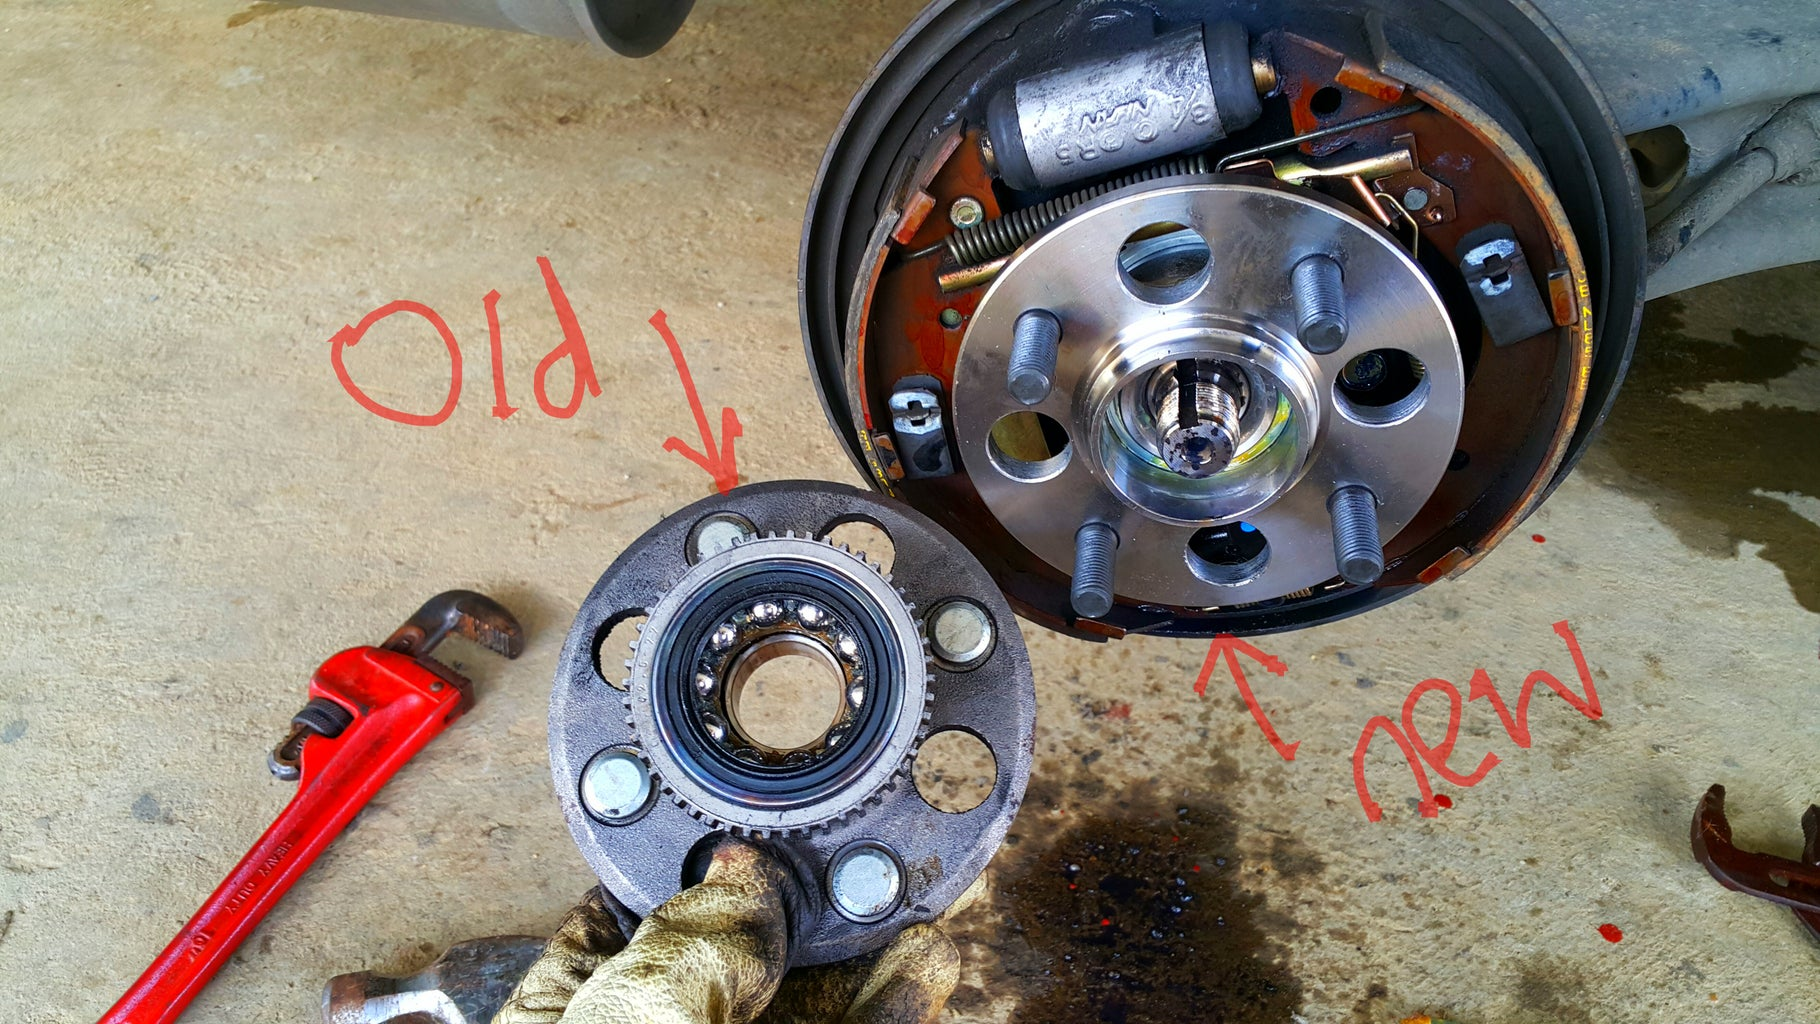 Remove the Old Hub and Install New Hub.